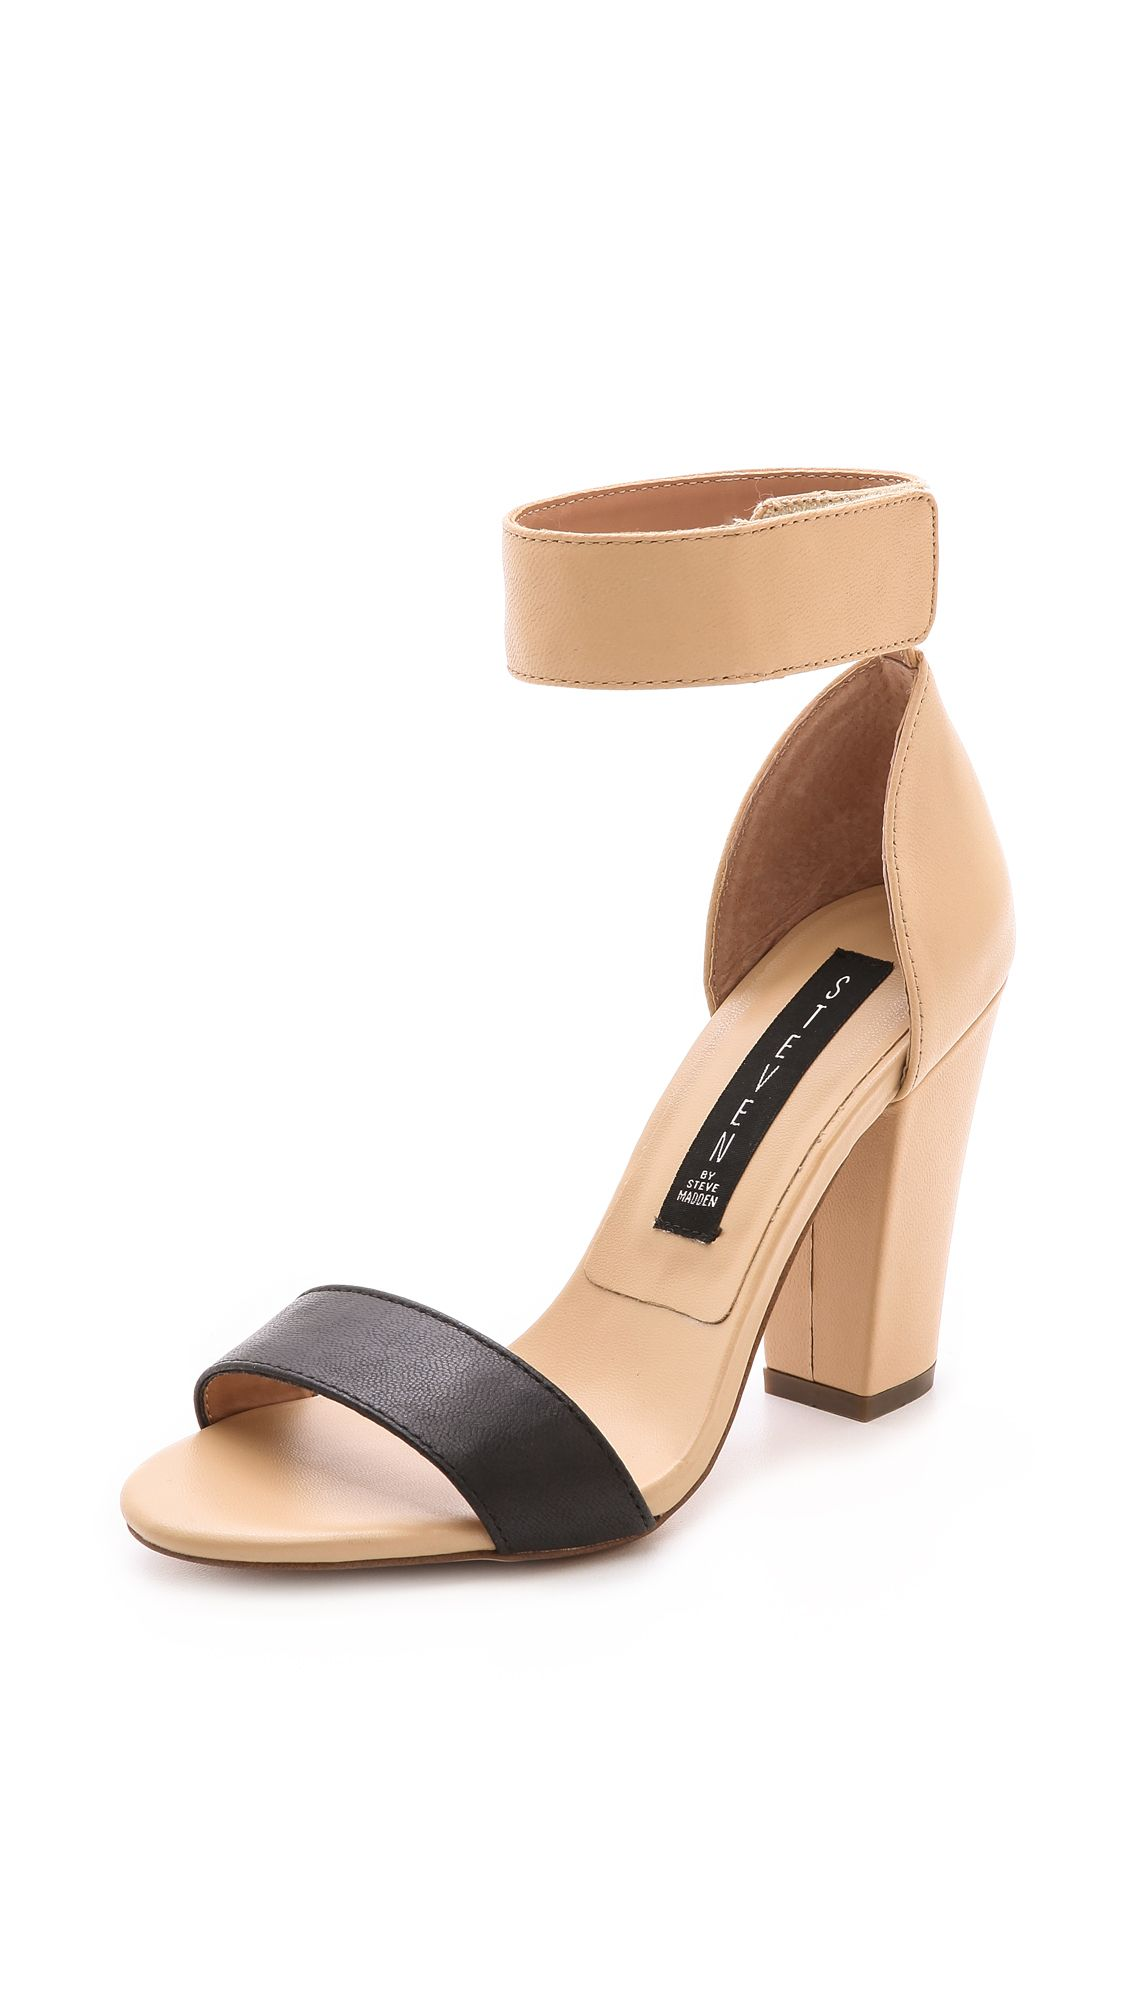 089f4953670 Steven By Steve Madden Nuvess Ankle Strap Sandals in Brown (Tan Multi)